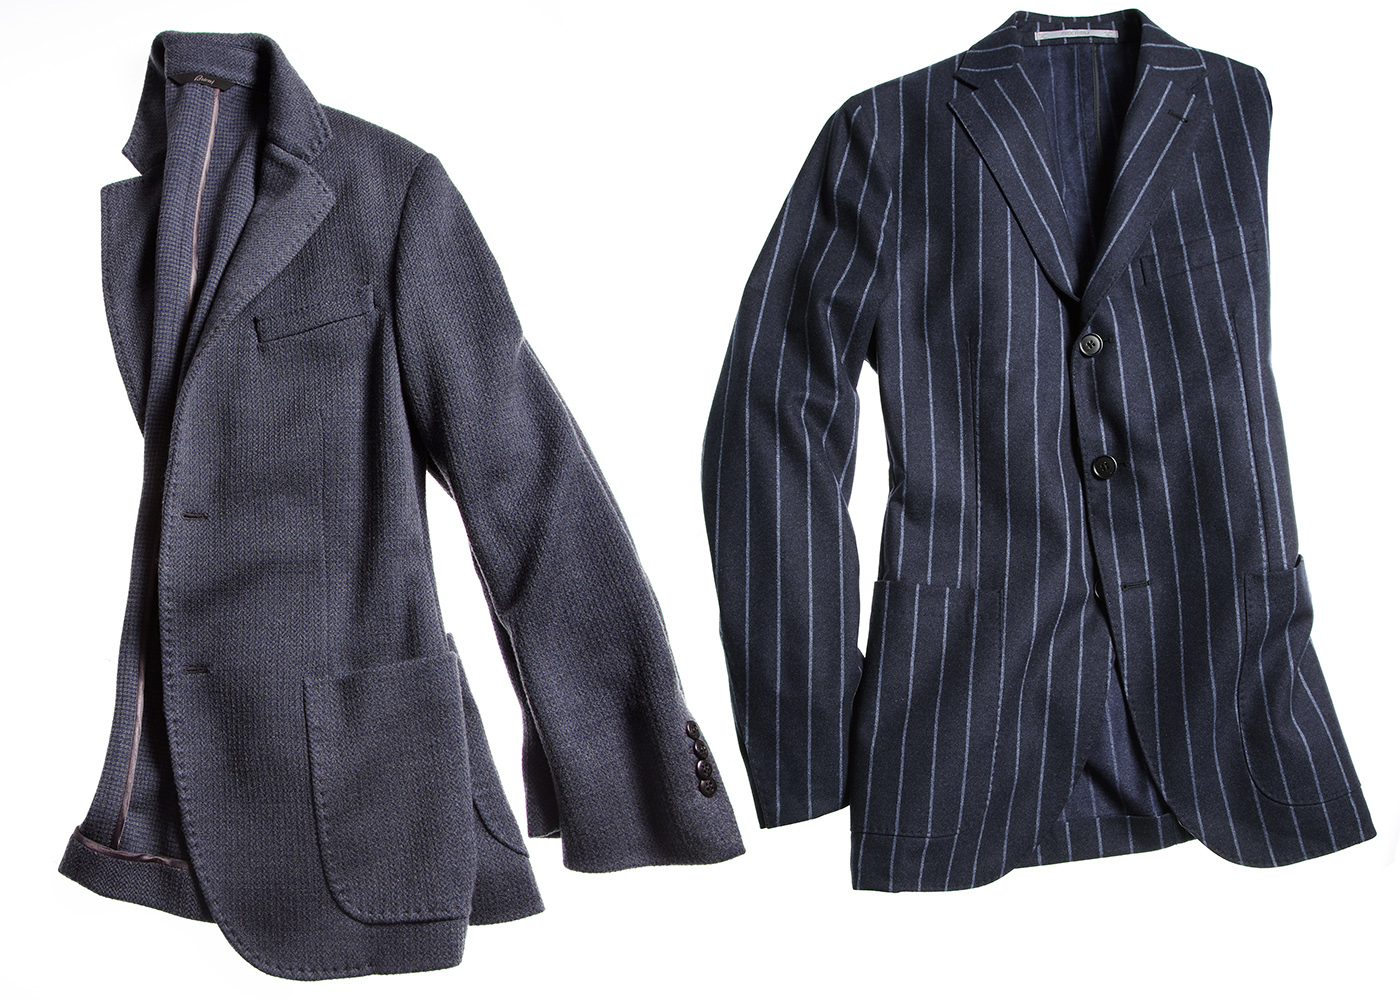 Town&Country Mens blazers web.jpg